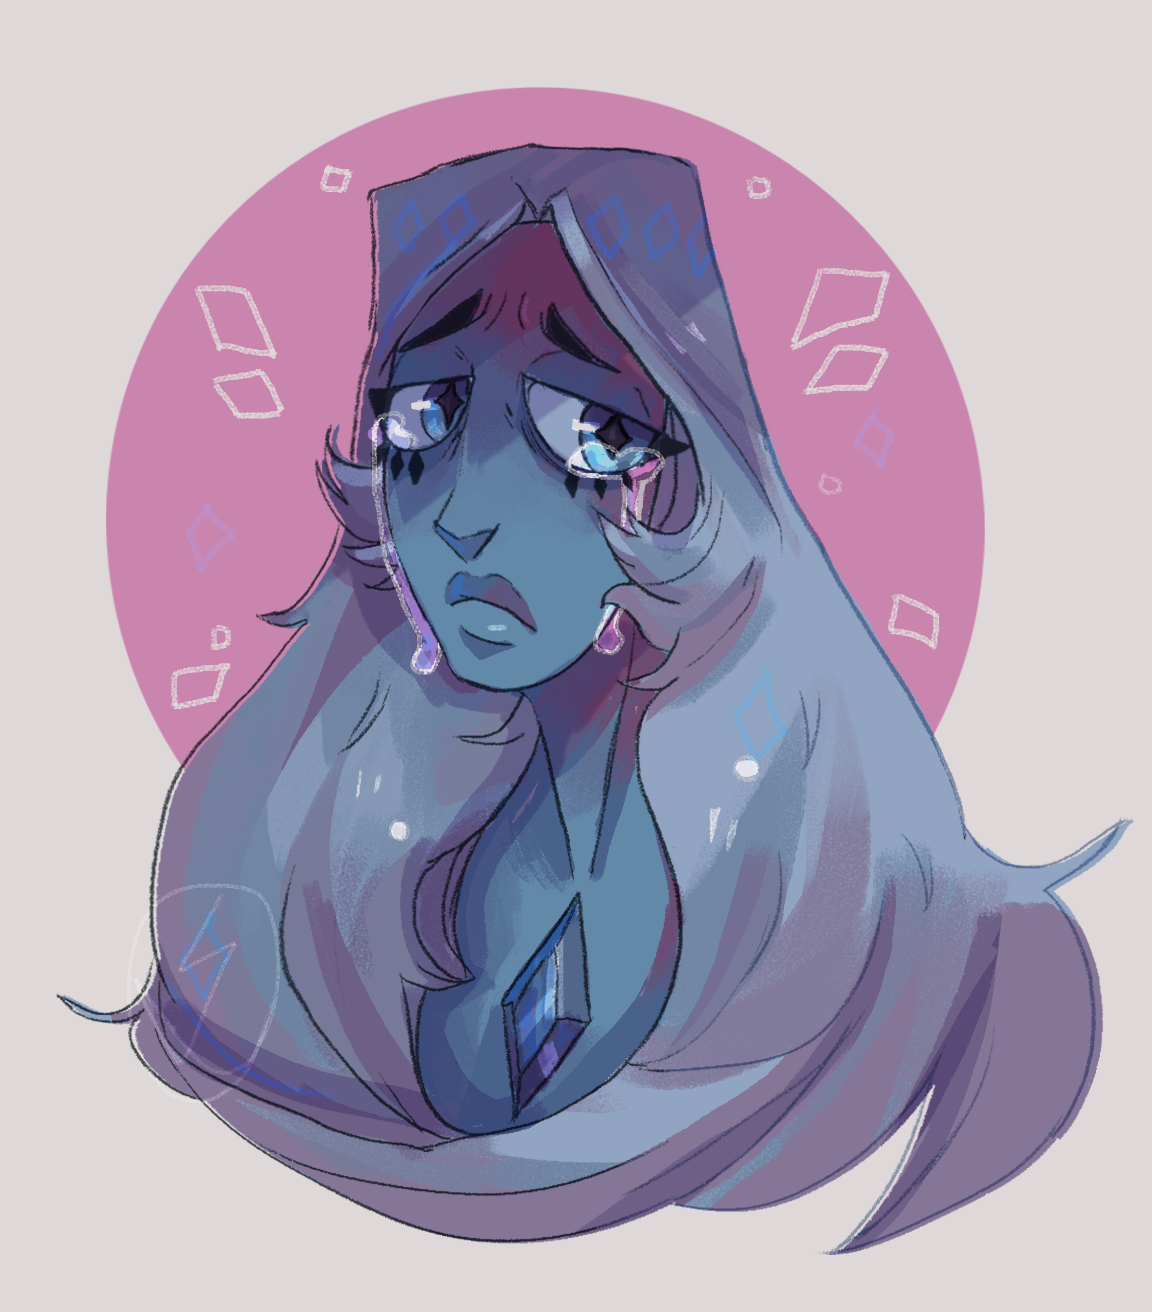 I wanted to doodle her in the honor of new episodes…